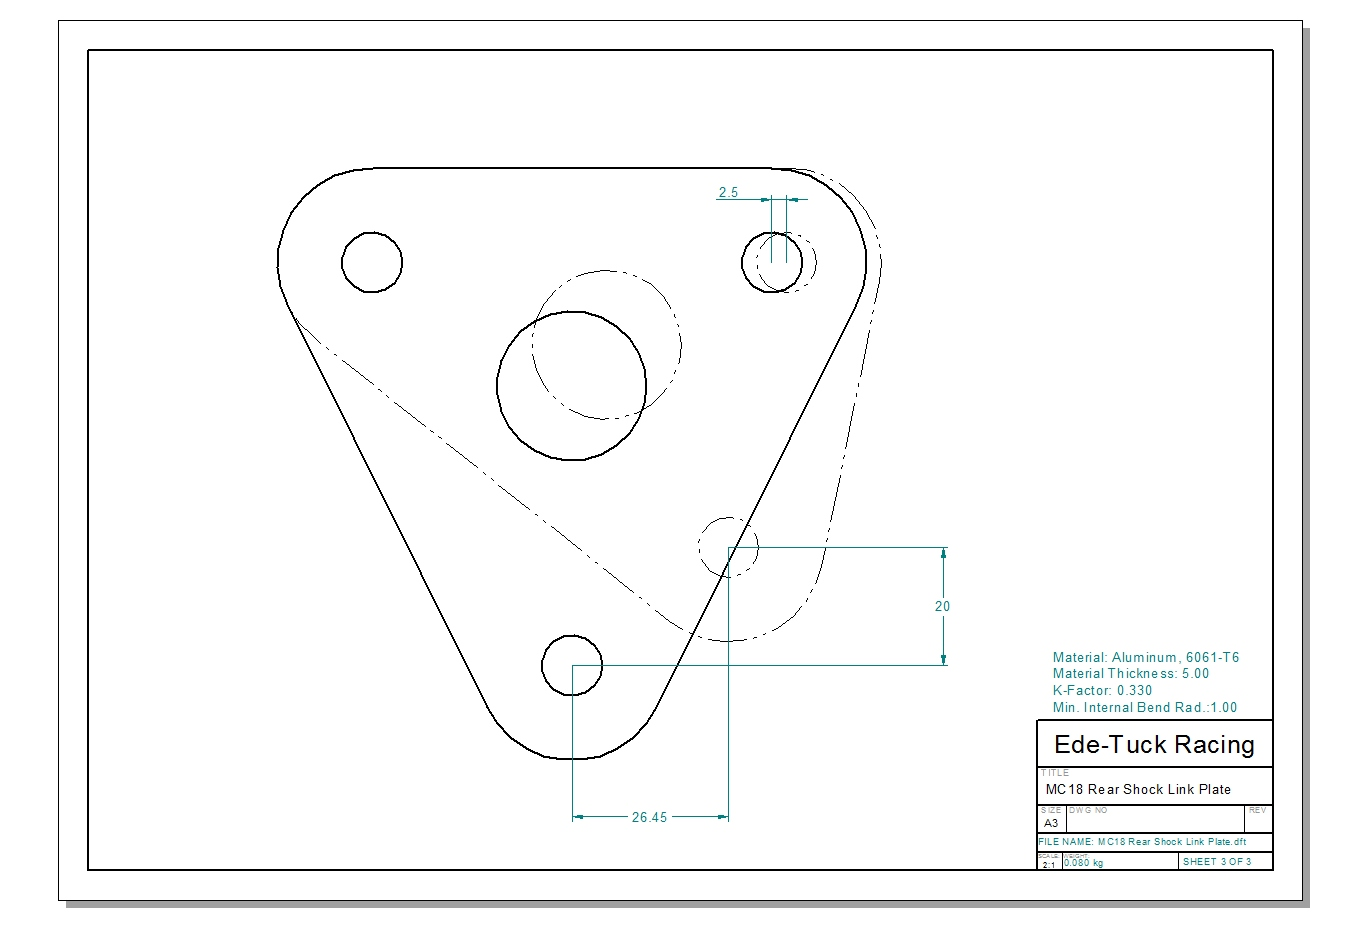 Nsr250 Forum 2011 Nsr 250 Wiring Diagram For Those Who Want To Be Difficult And Use A Link Plate That Is Compromise Between Two Plates Shown Above Well Ok Here You Go